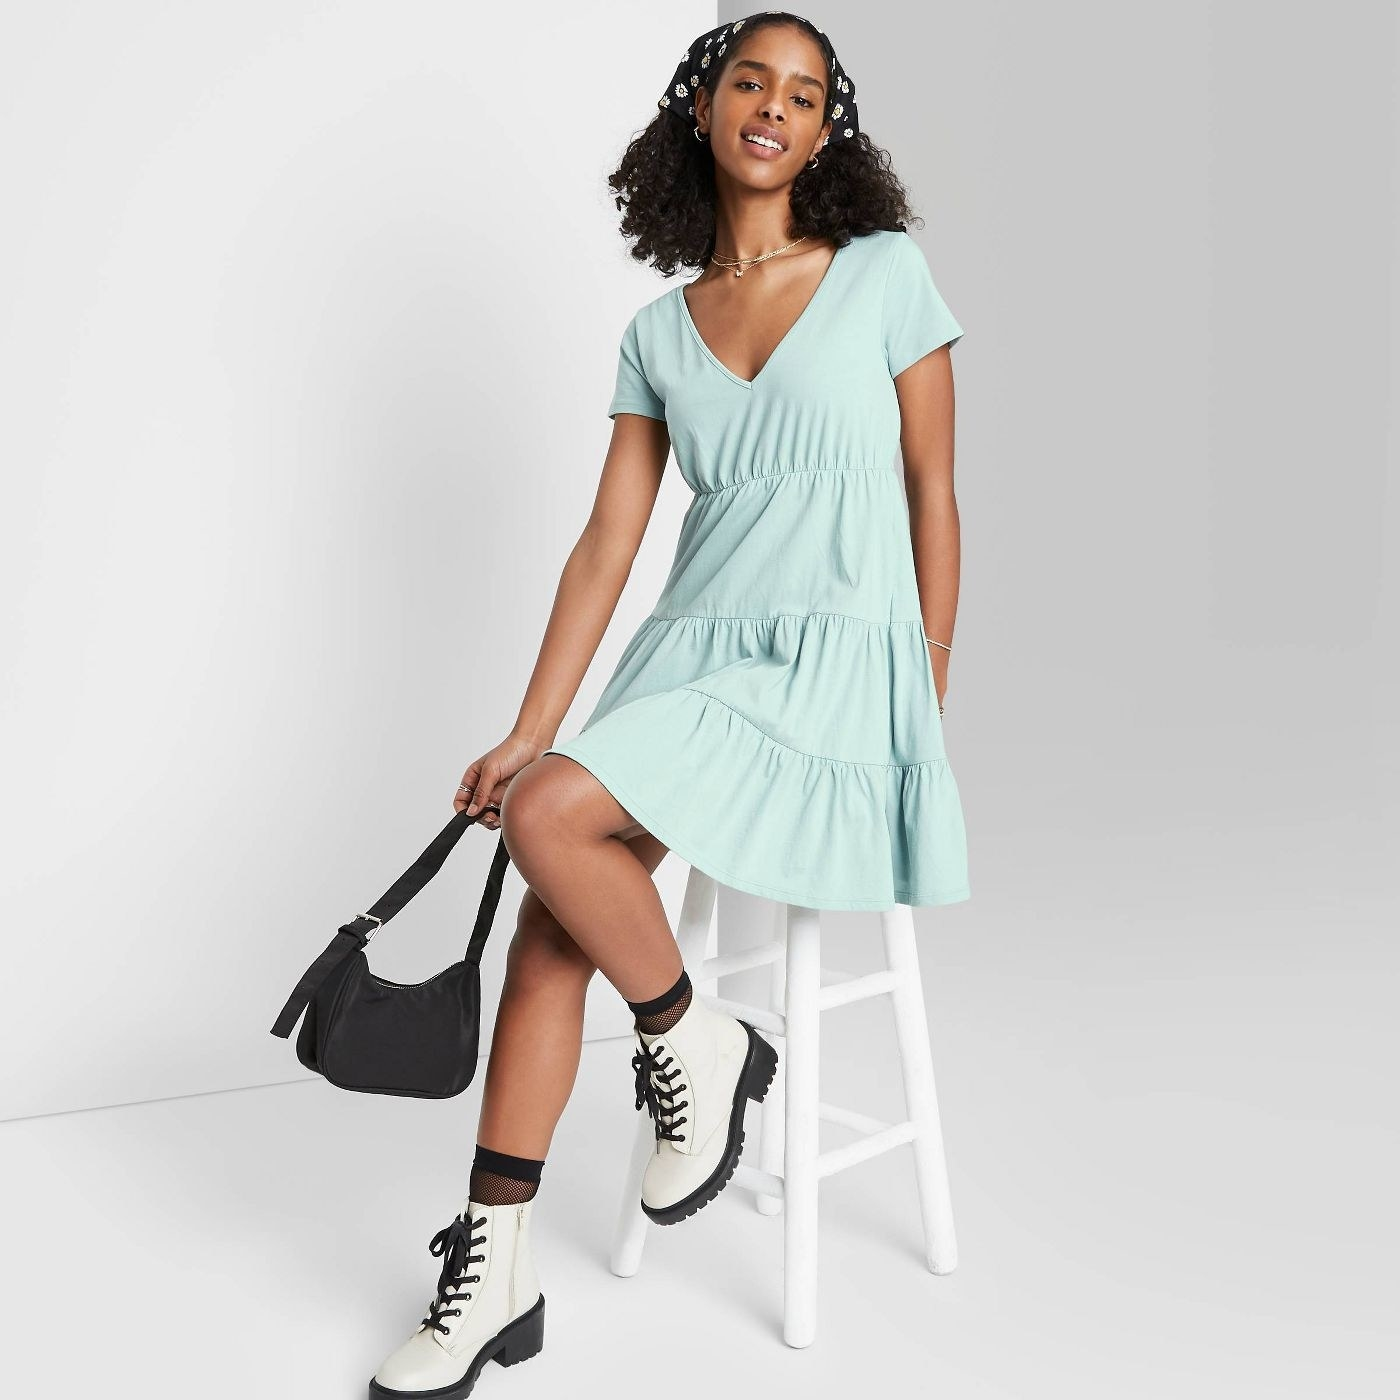 Model wearing light blue v-neck dress with tiered silhouette